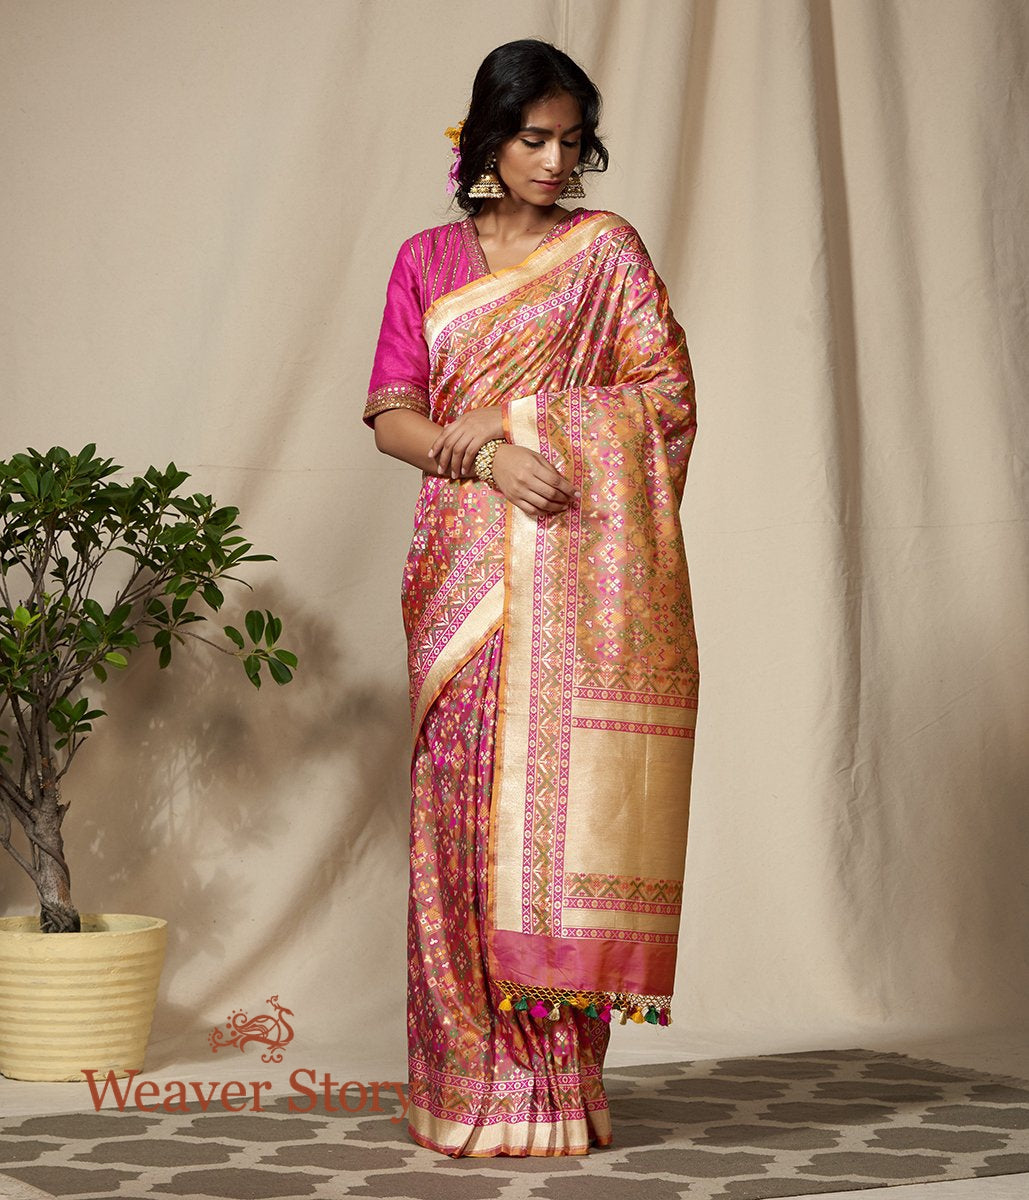 Handwoven Peach and Pink Banarasi Patola Saree with Meenakari